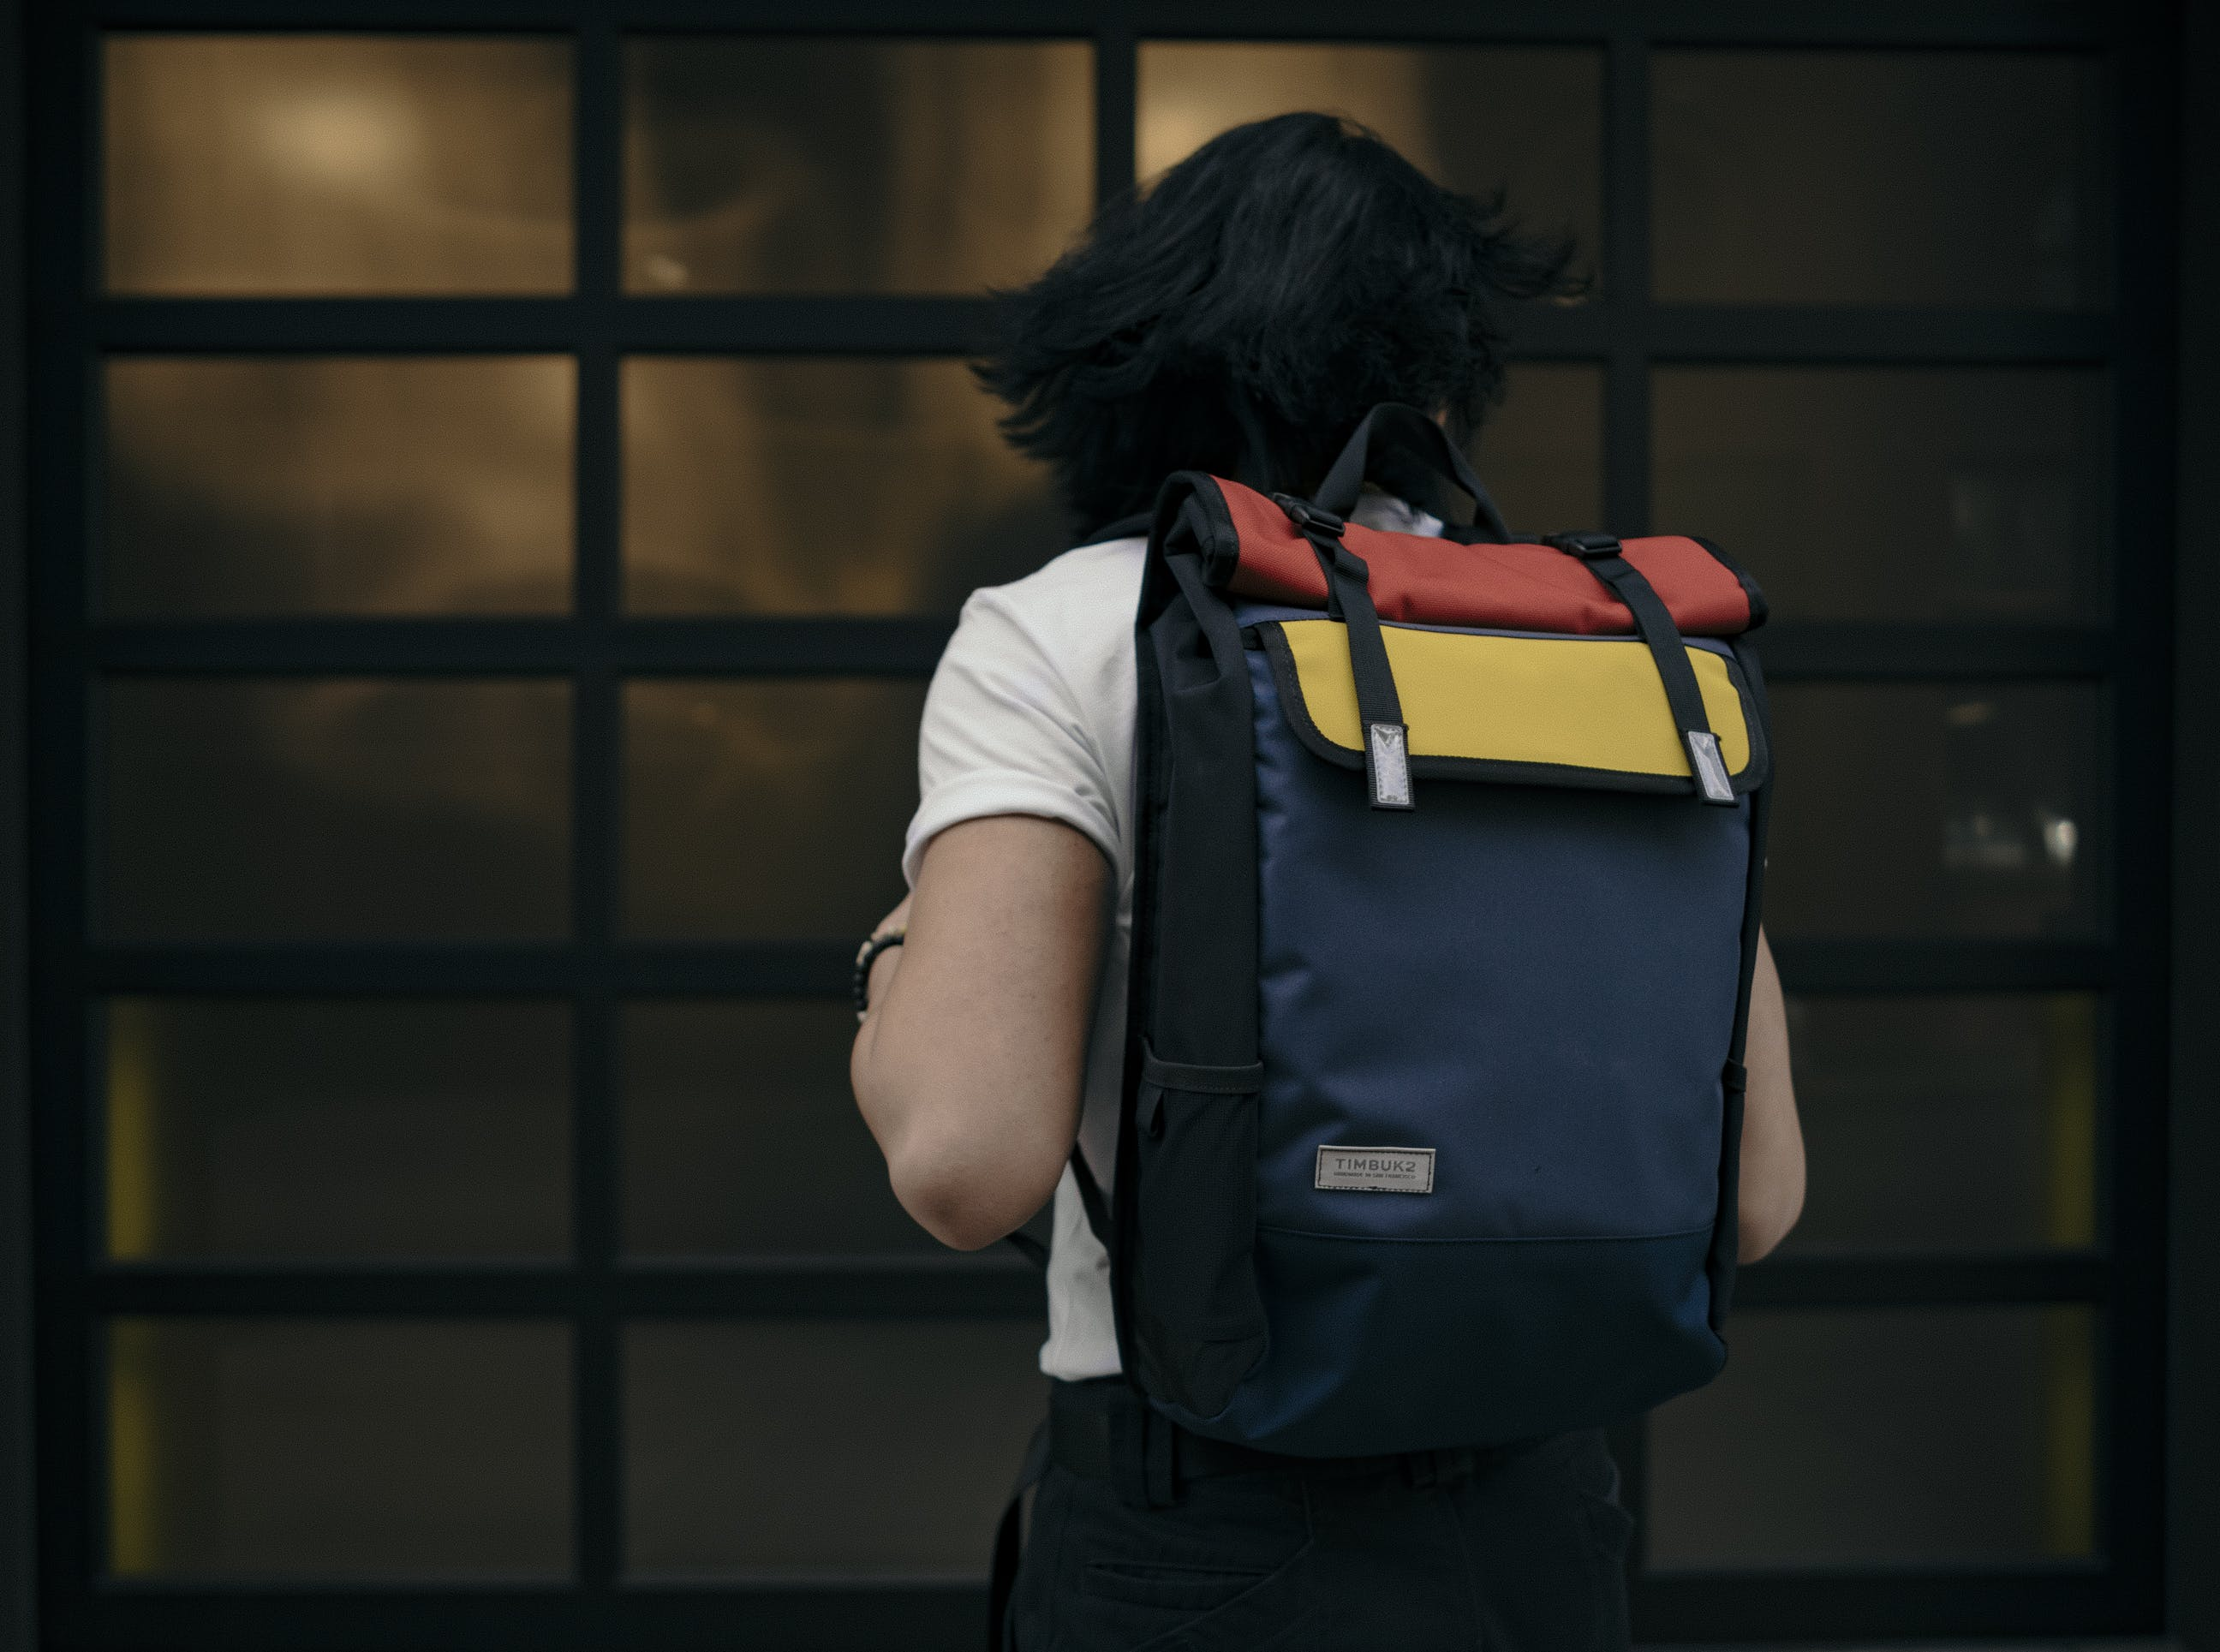 Man Standing While Wearing Black, Red, and Yellow Backpack